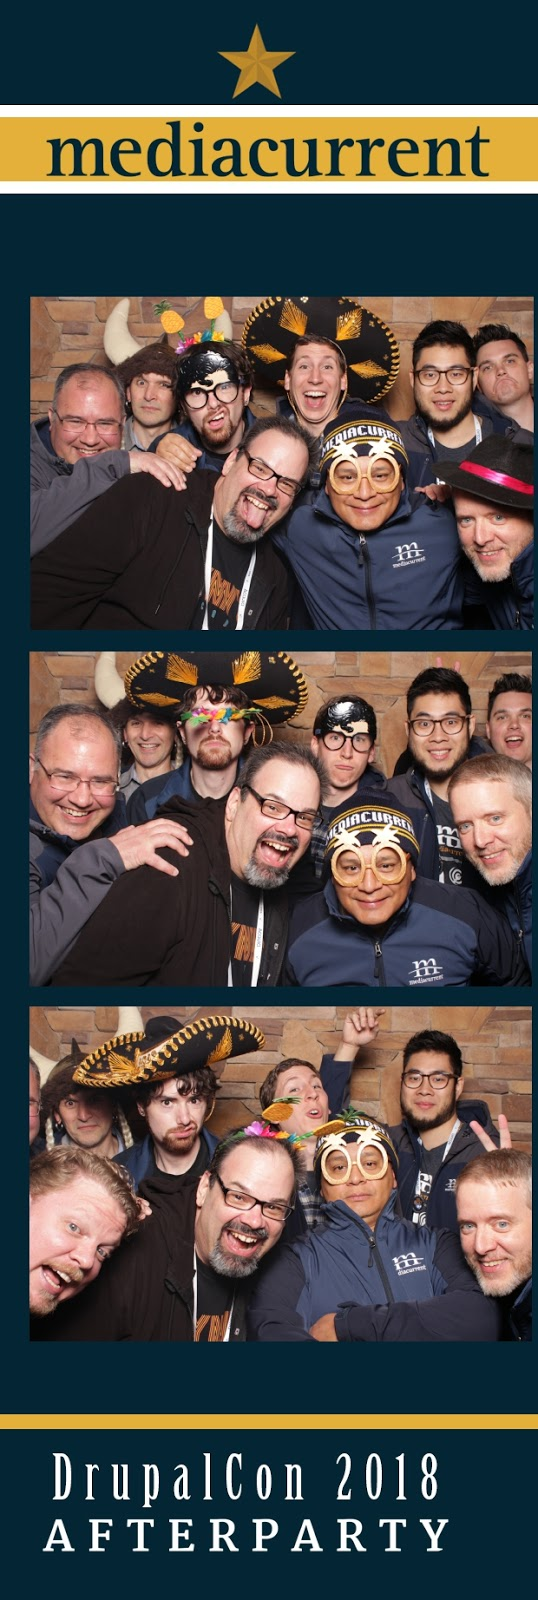 Drupalcon Nashville Photo